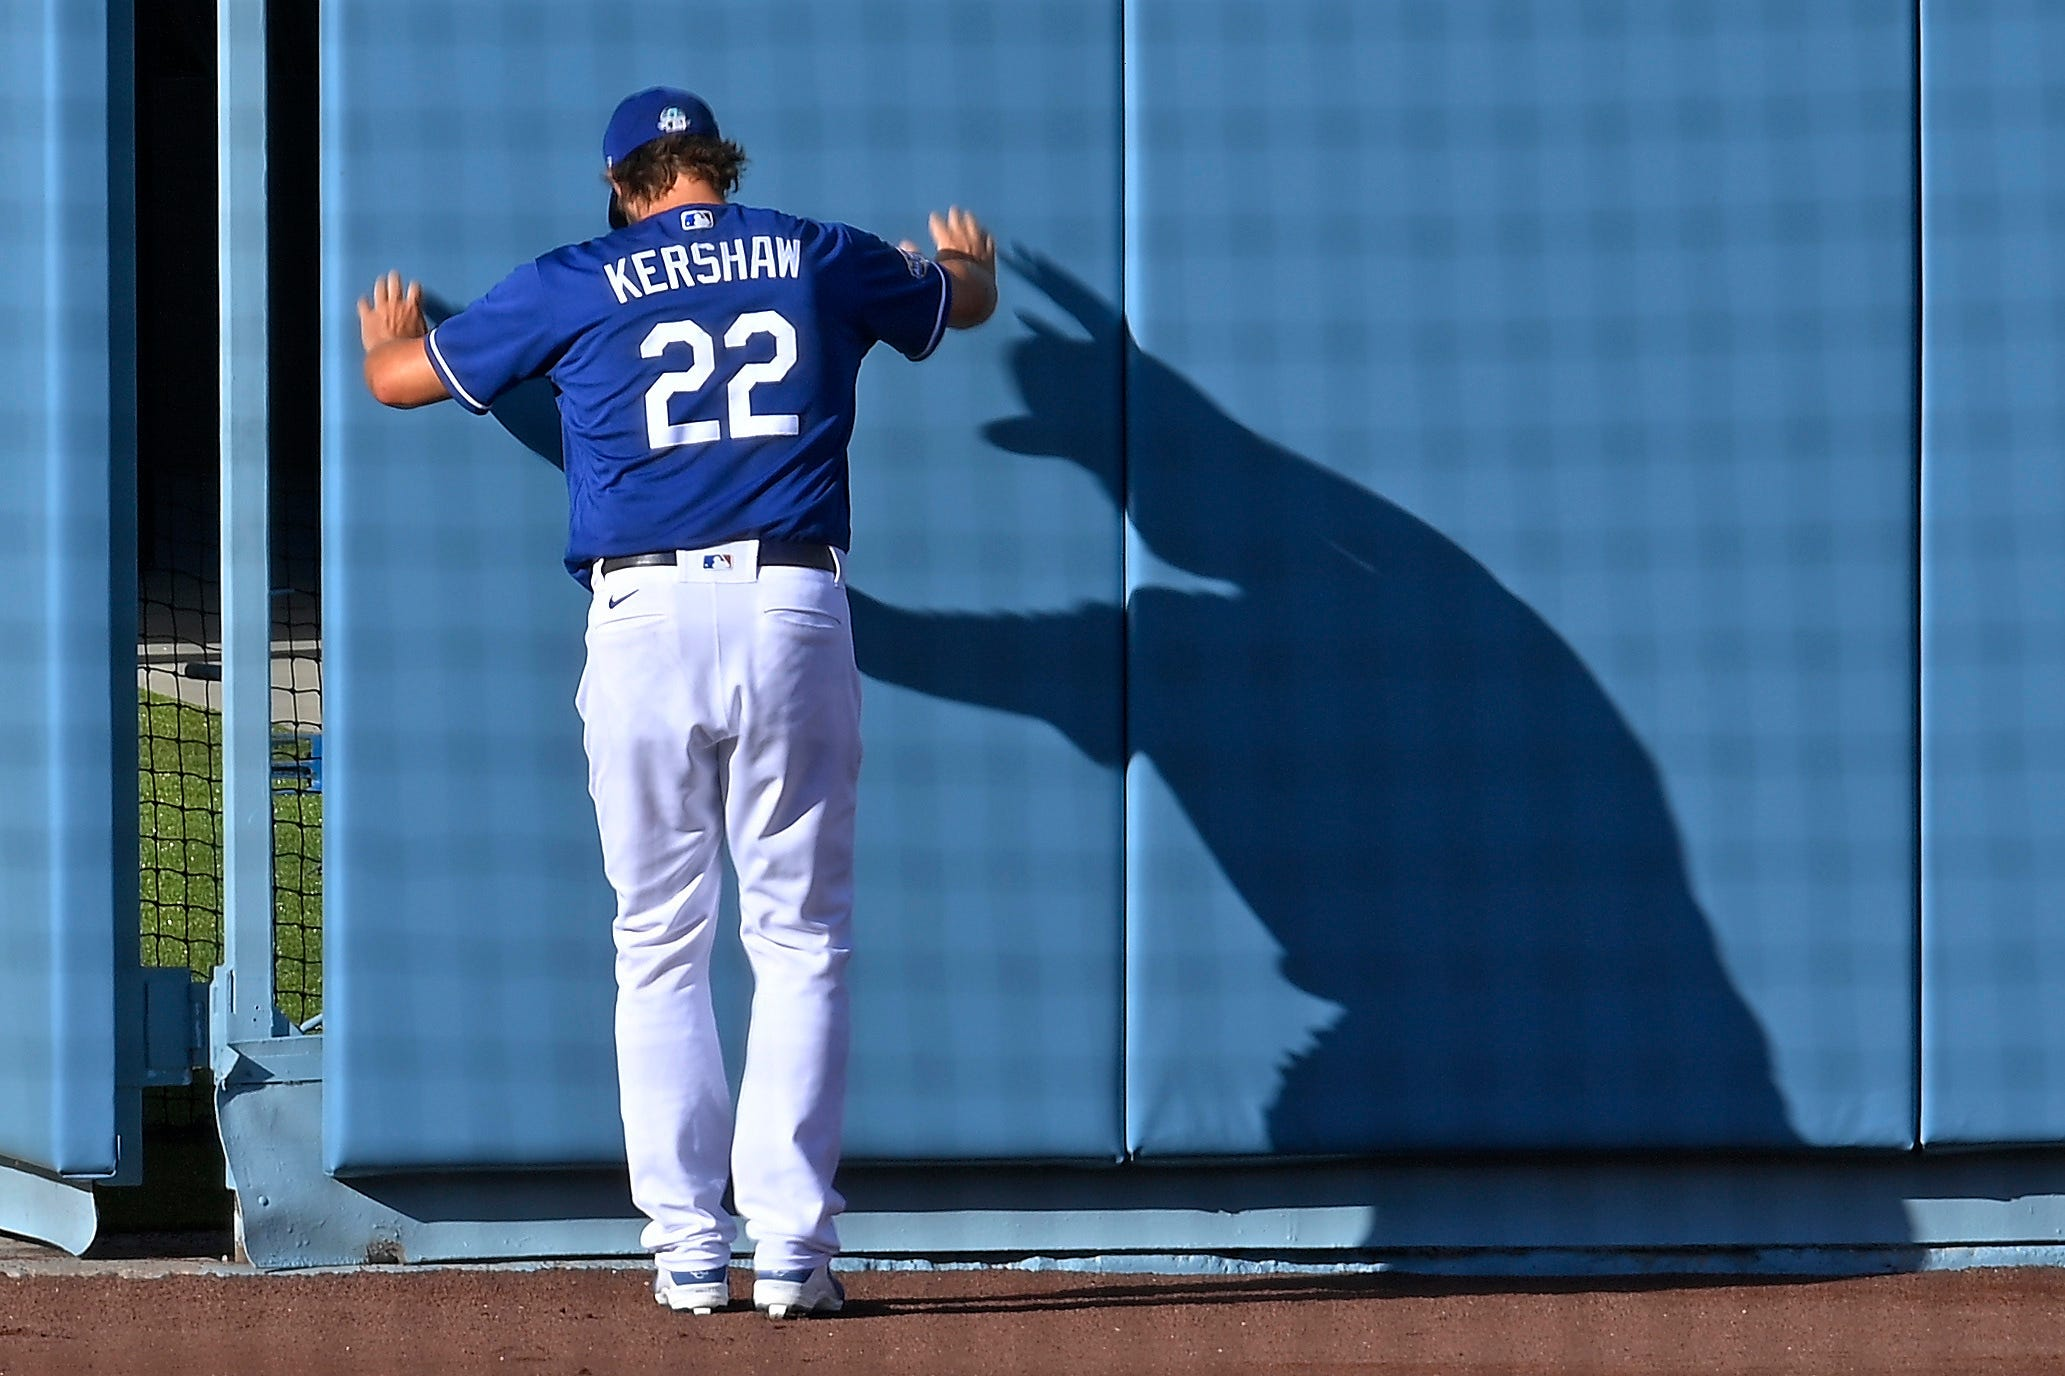 Dodgers vs. Braves: NLCS preview, predictions, schedule